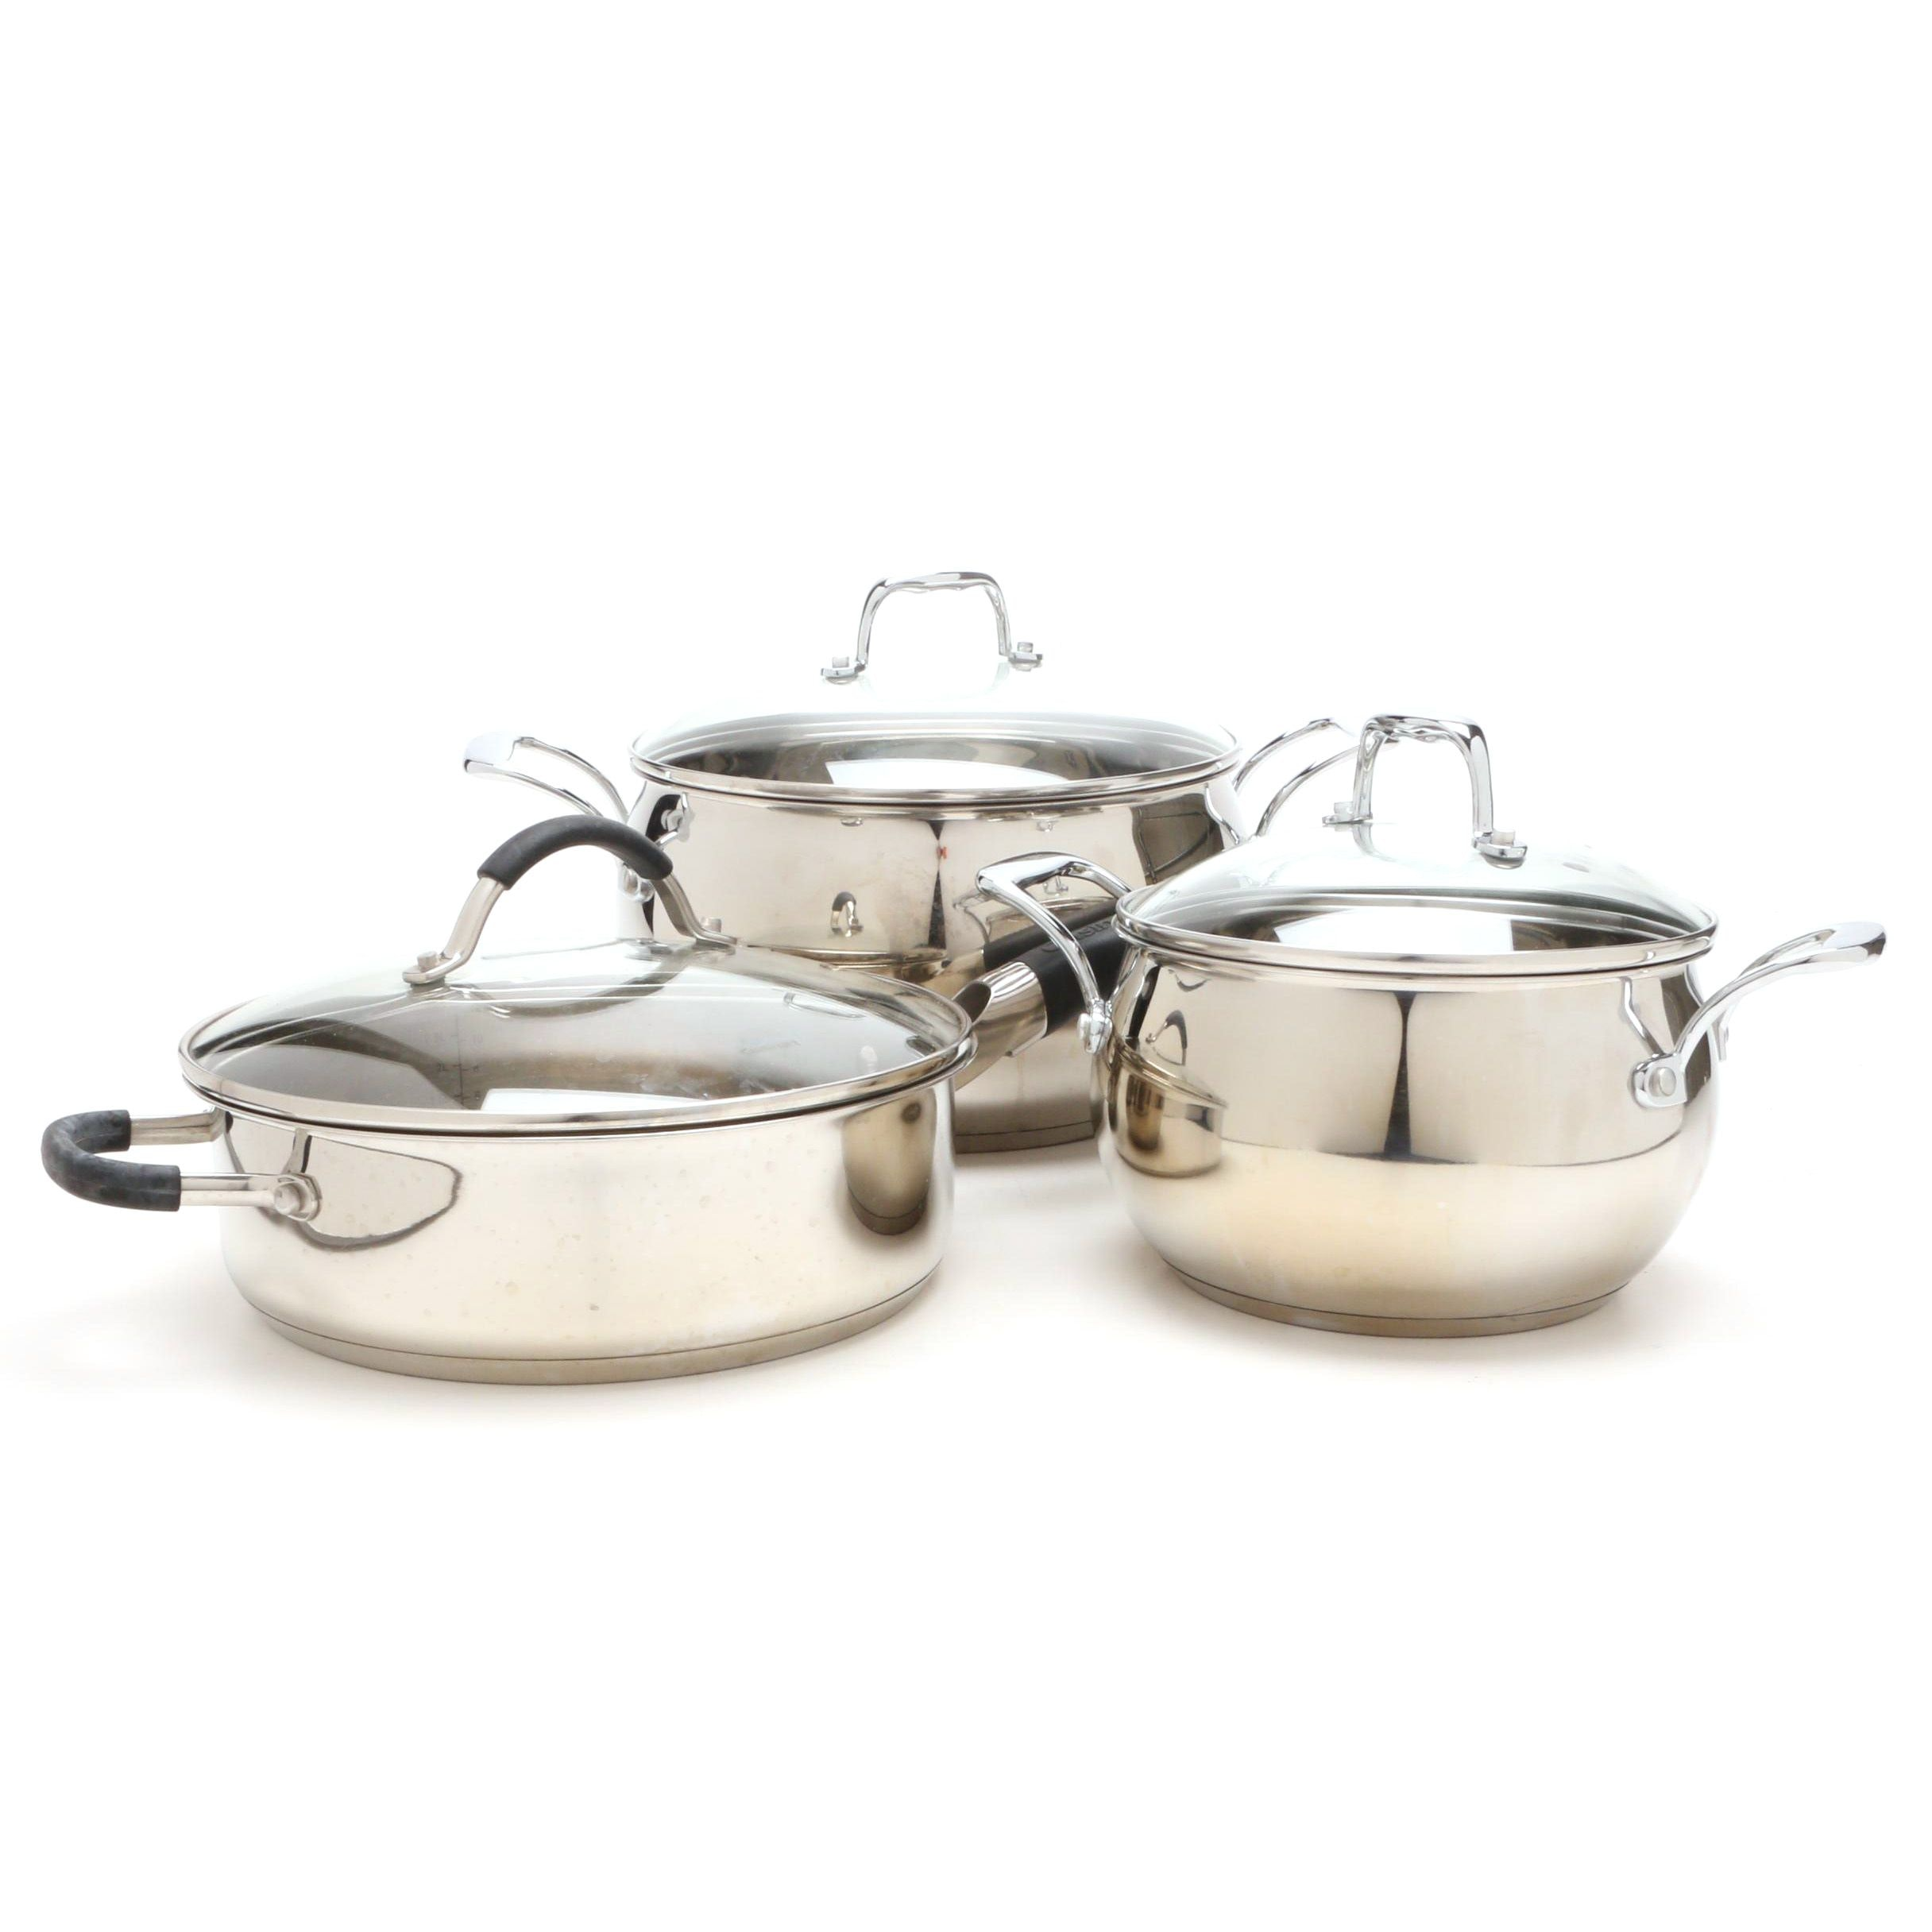 Palm Restaurant Stainless Steel Cookware with a Cuisinart Pan